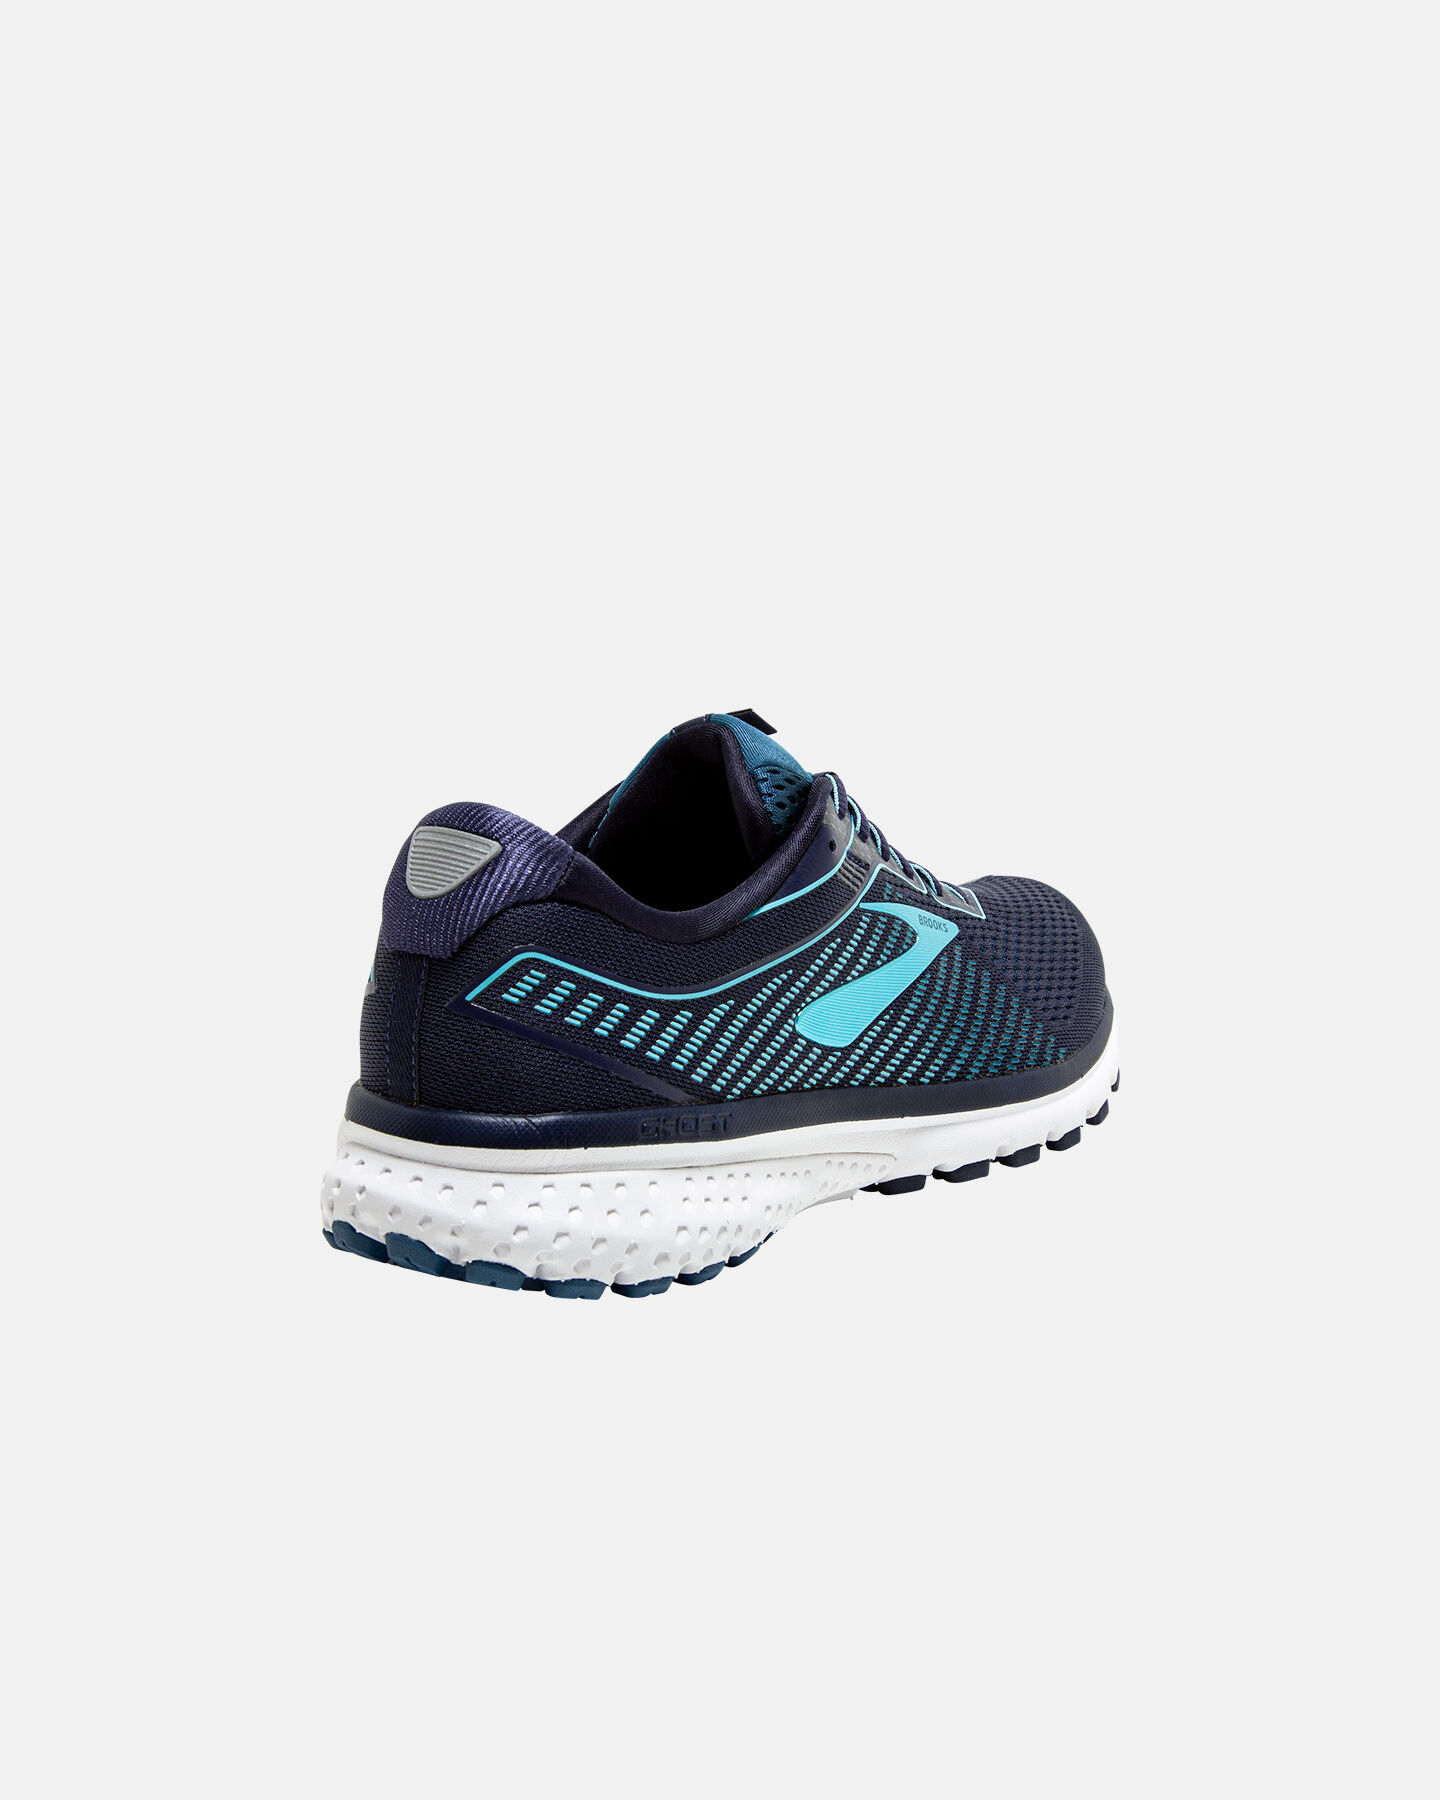 Scarpe running BROOKS GHOST 12 W S5161128 scatto 2